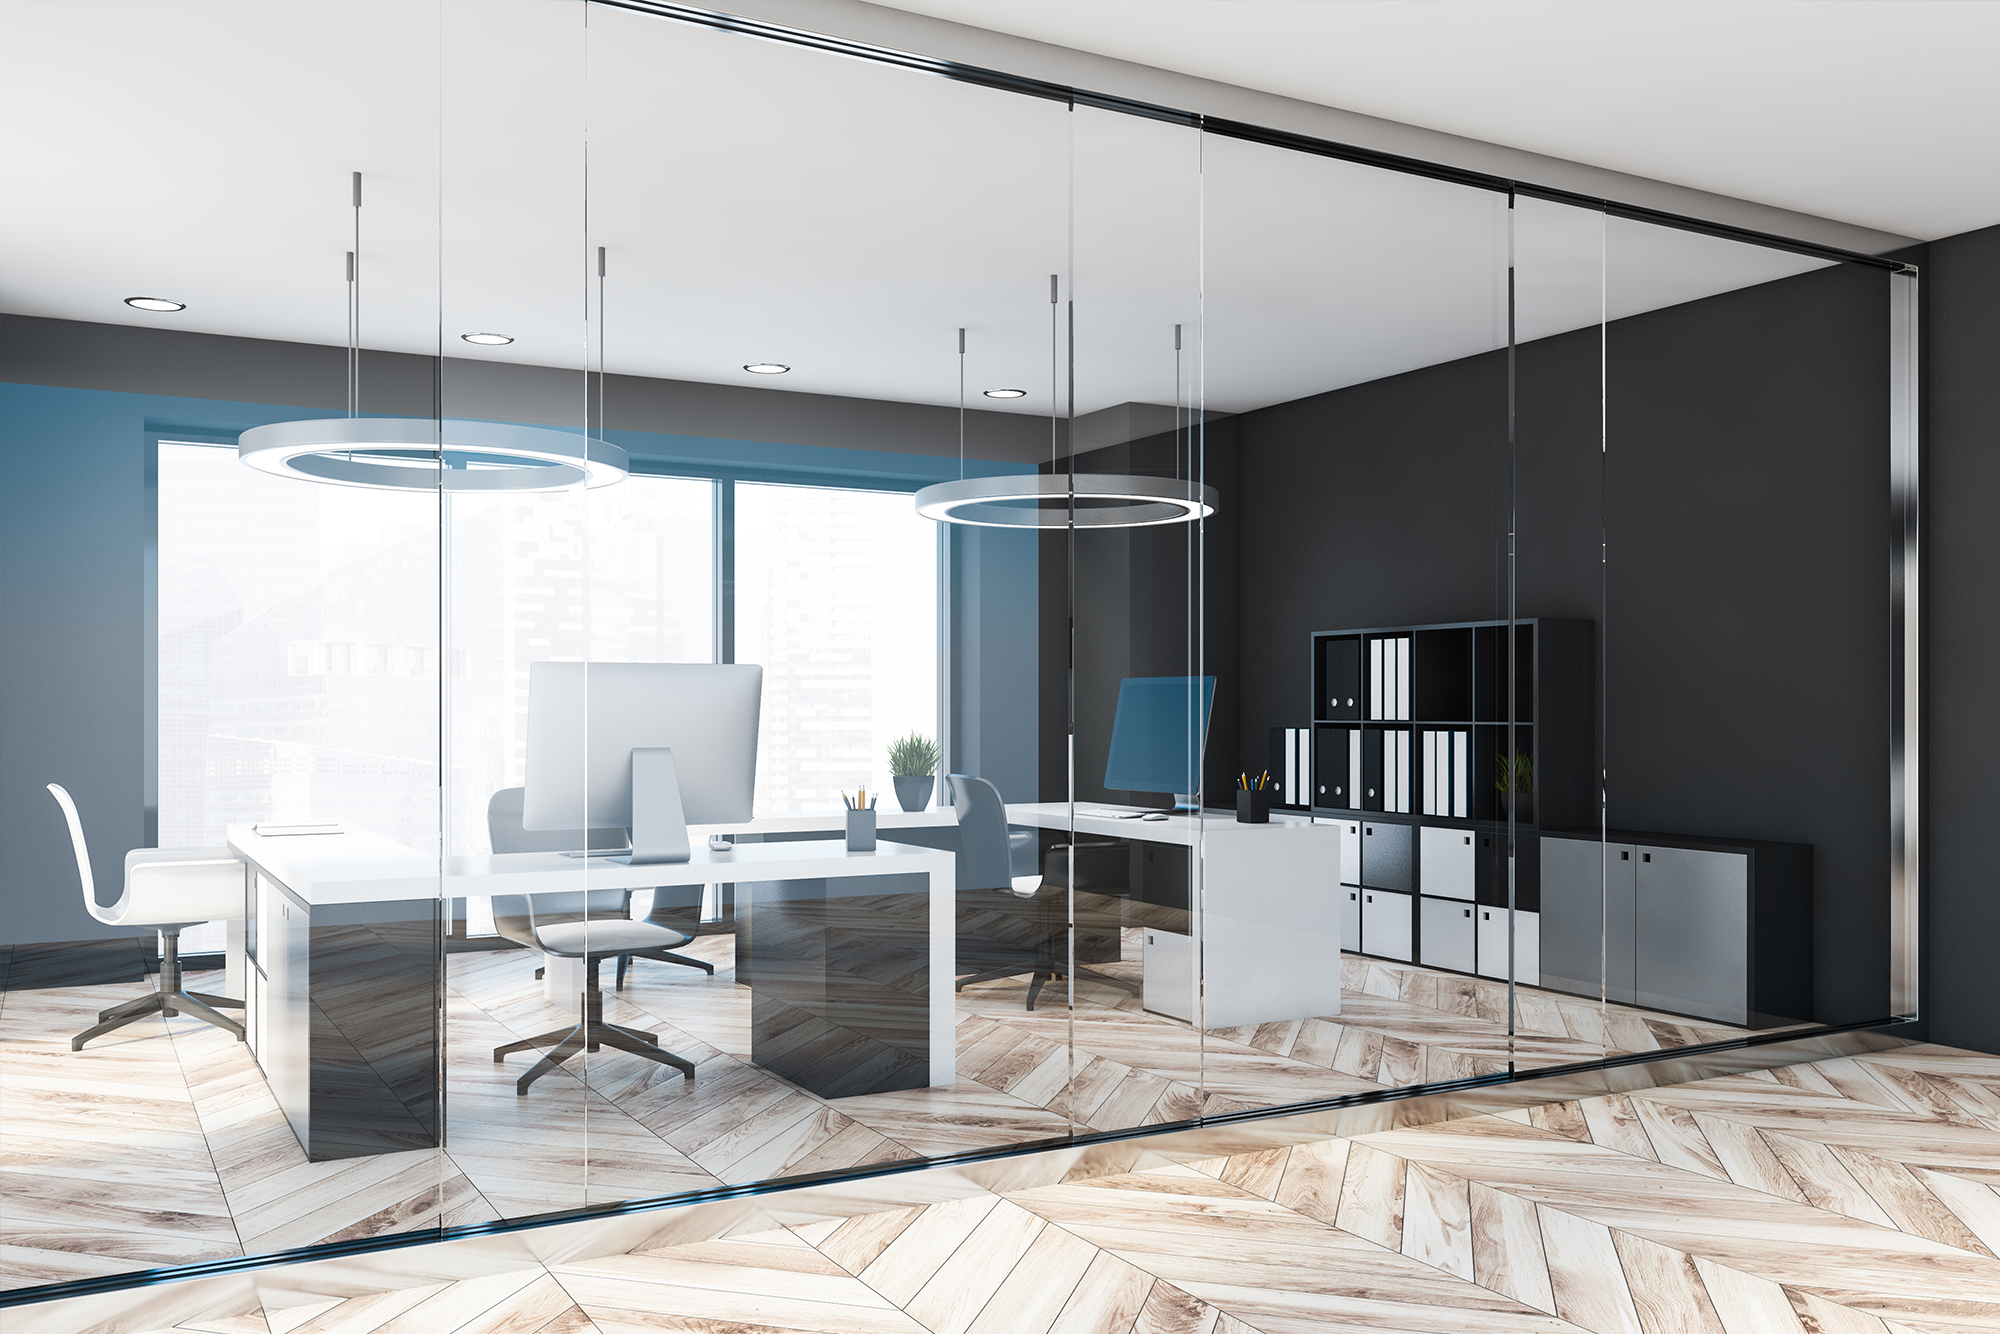 Supercharge Your Commercial Cleaning Services with MARBLELIFE - Post